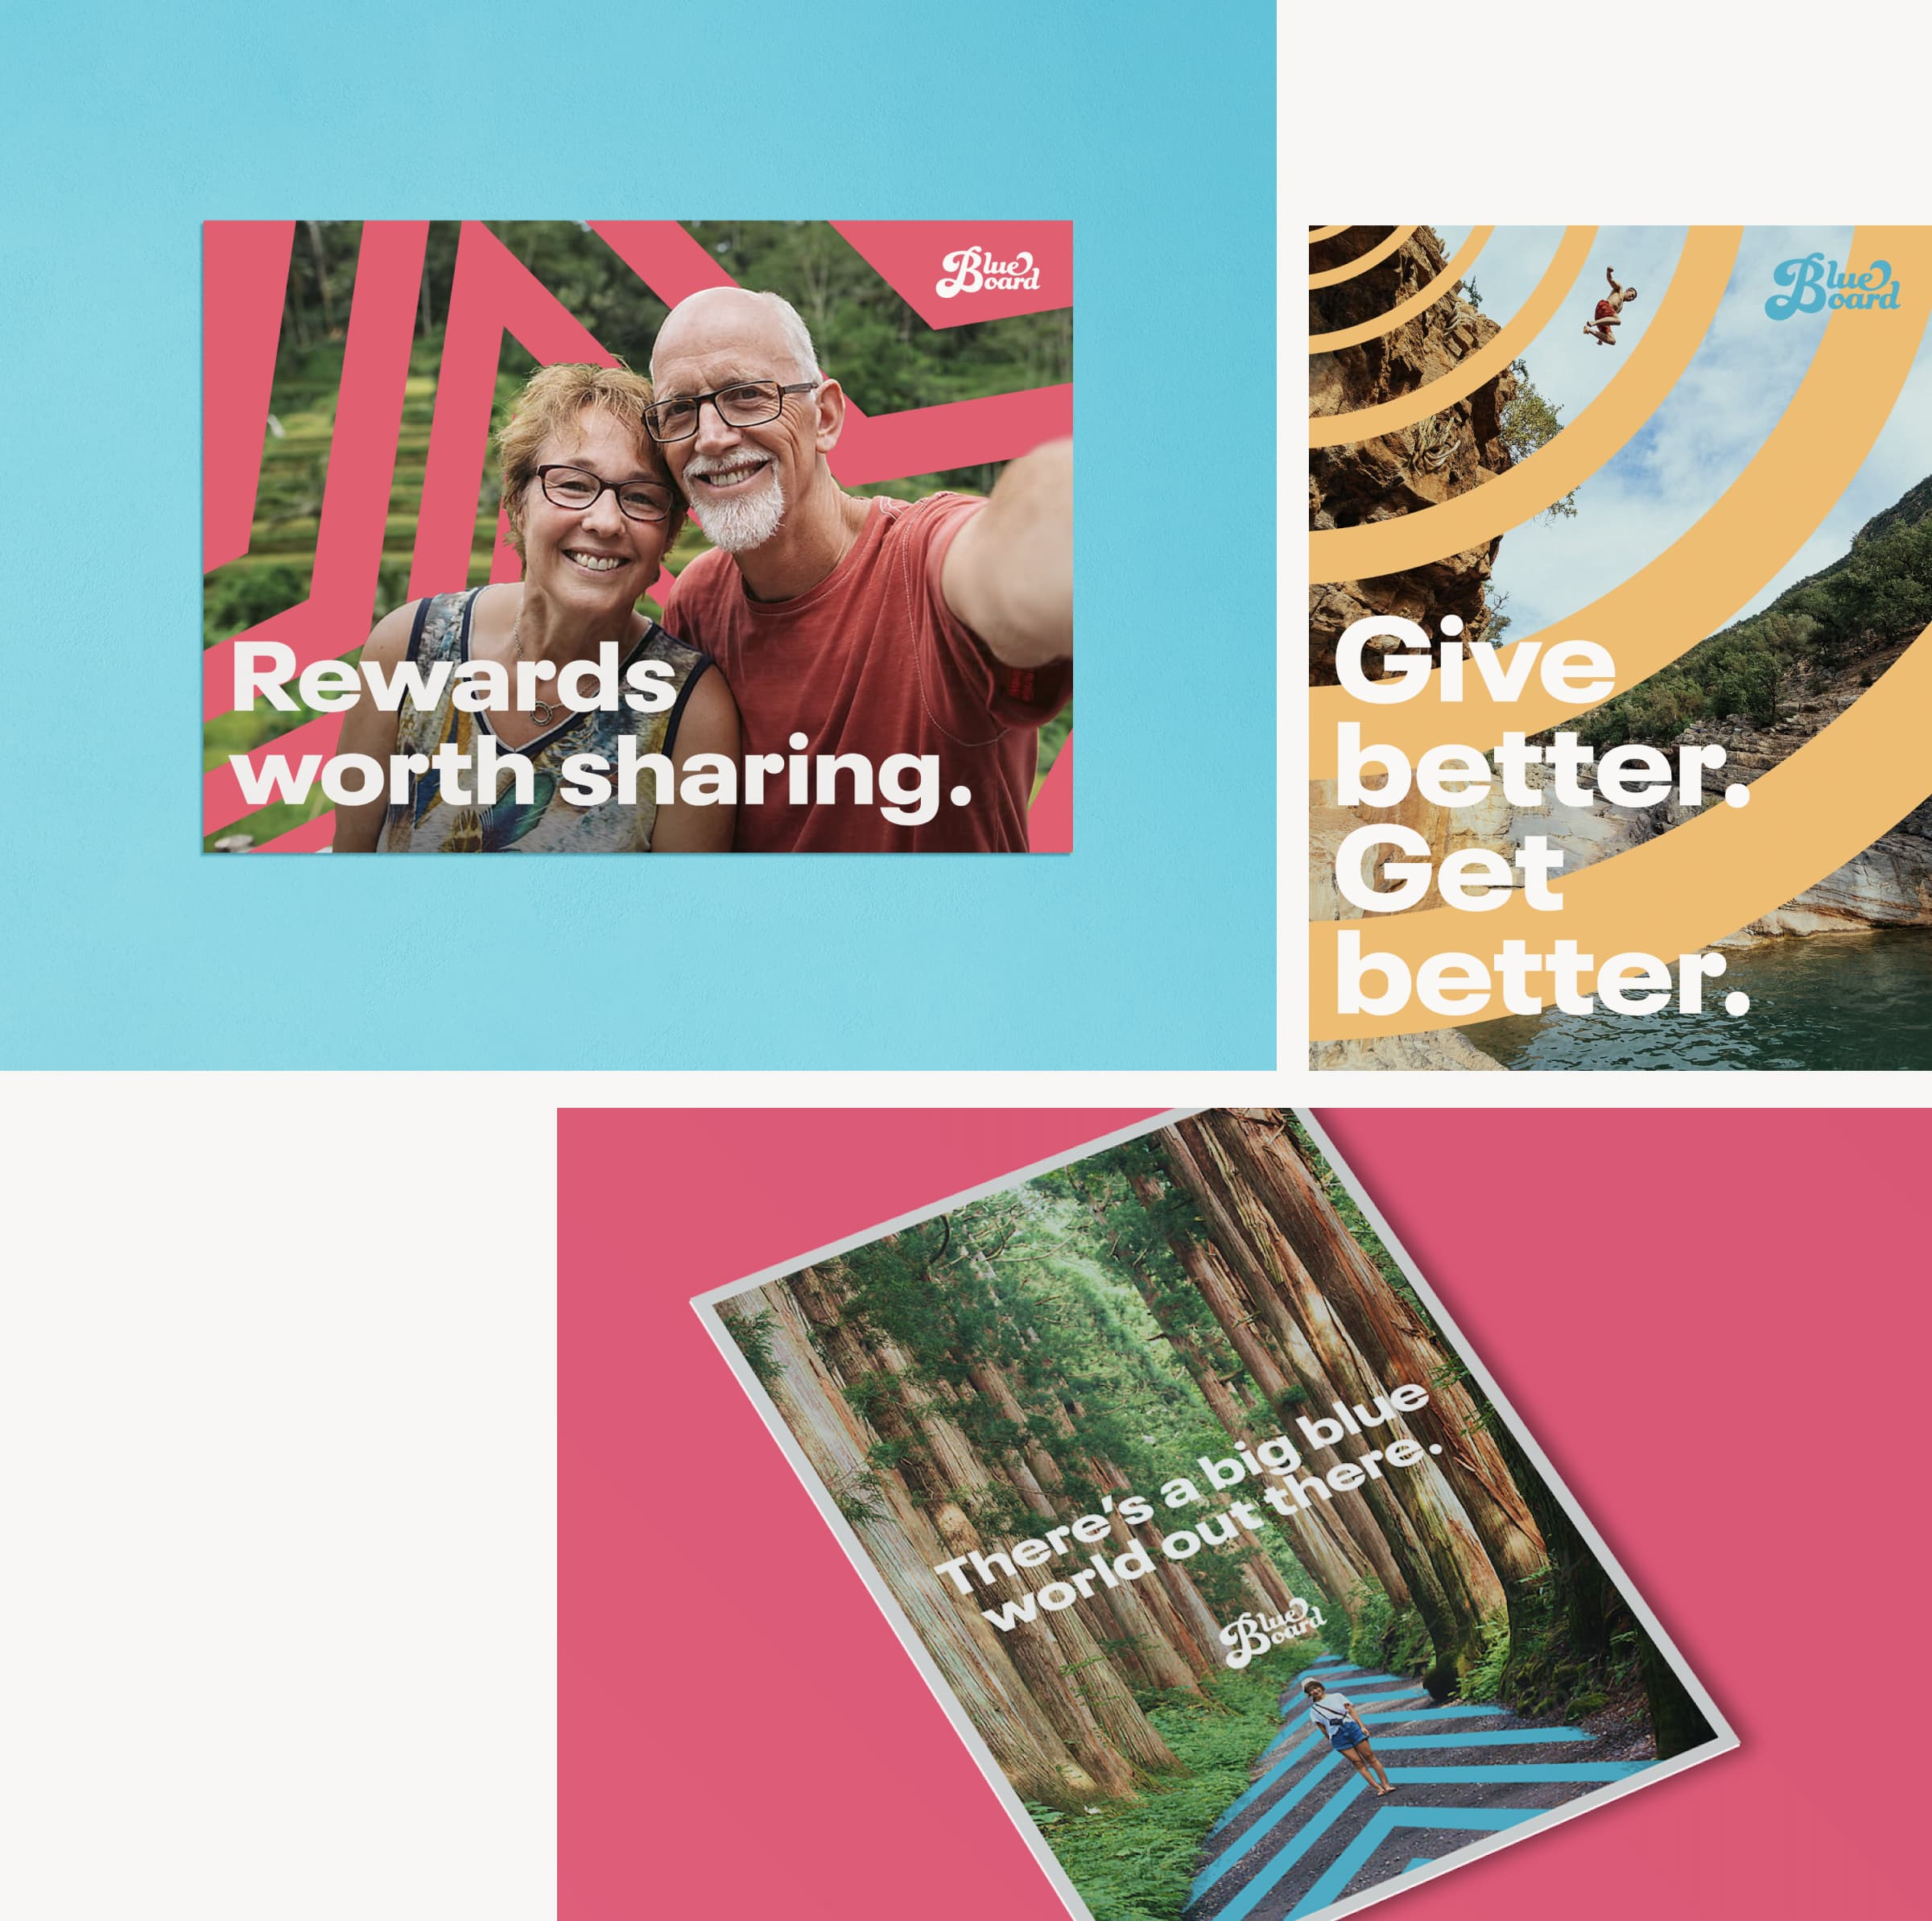 A series of three images showing Blueboard's new brand design, including: An elderly couple on vacation taking a selfie, a man cliff jumping, and a woman exploring a redwood forest.